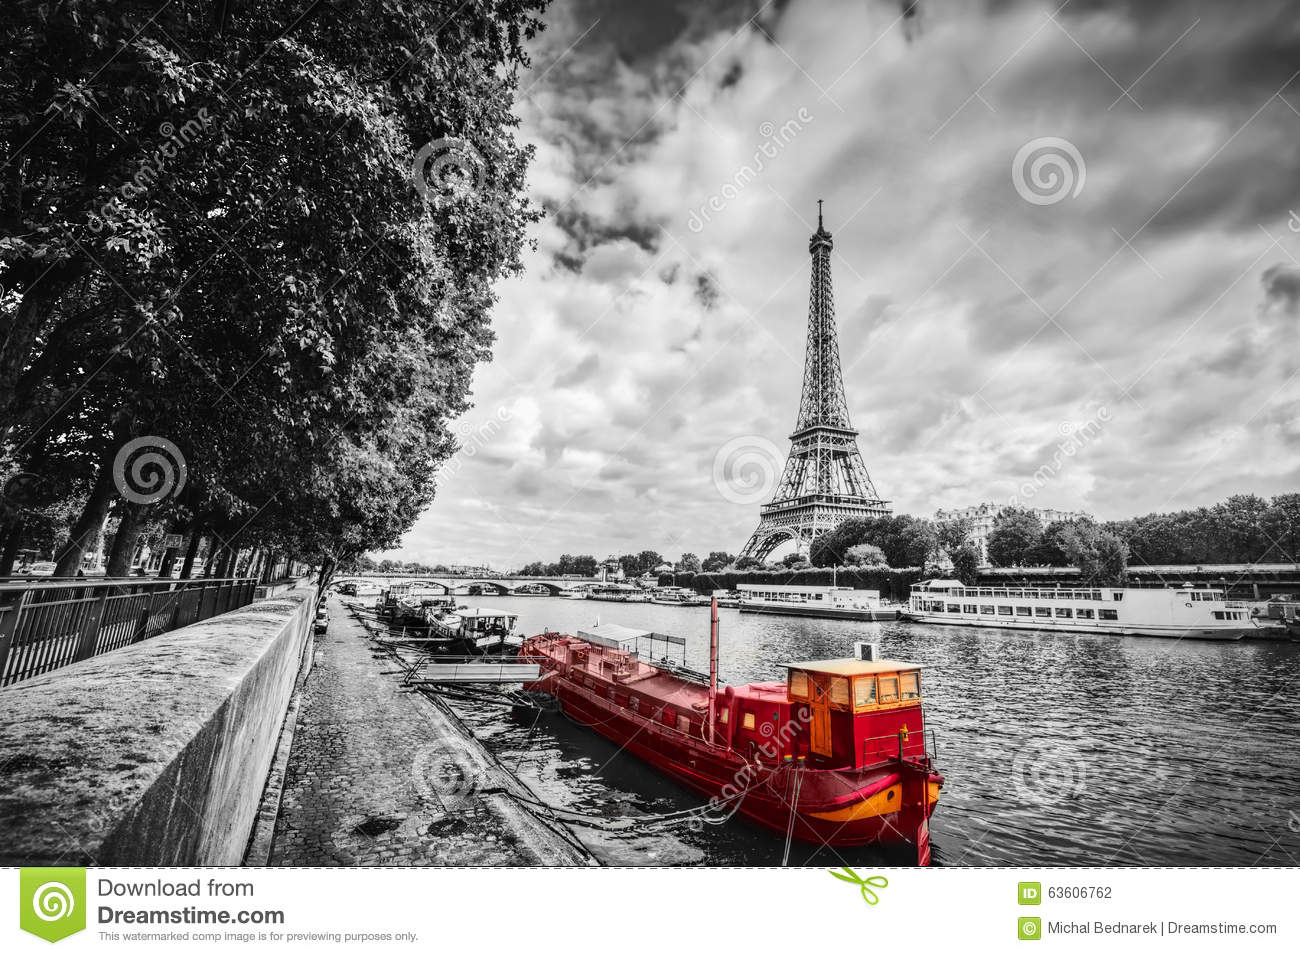 Eiffel Tower over Seine river in Paris, France. Vintage